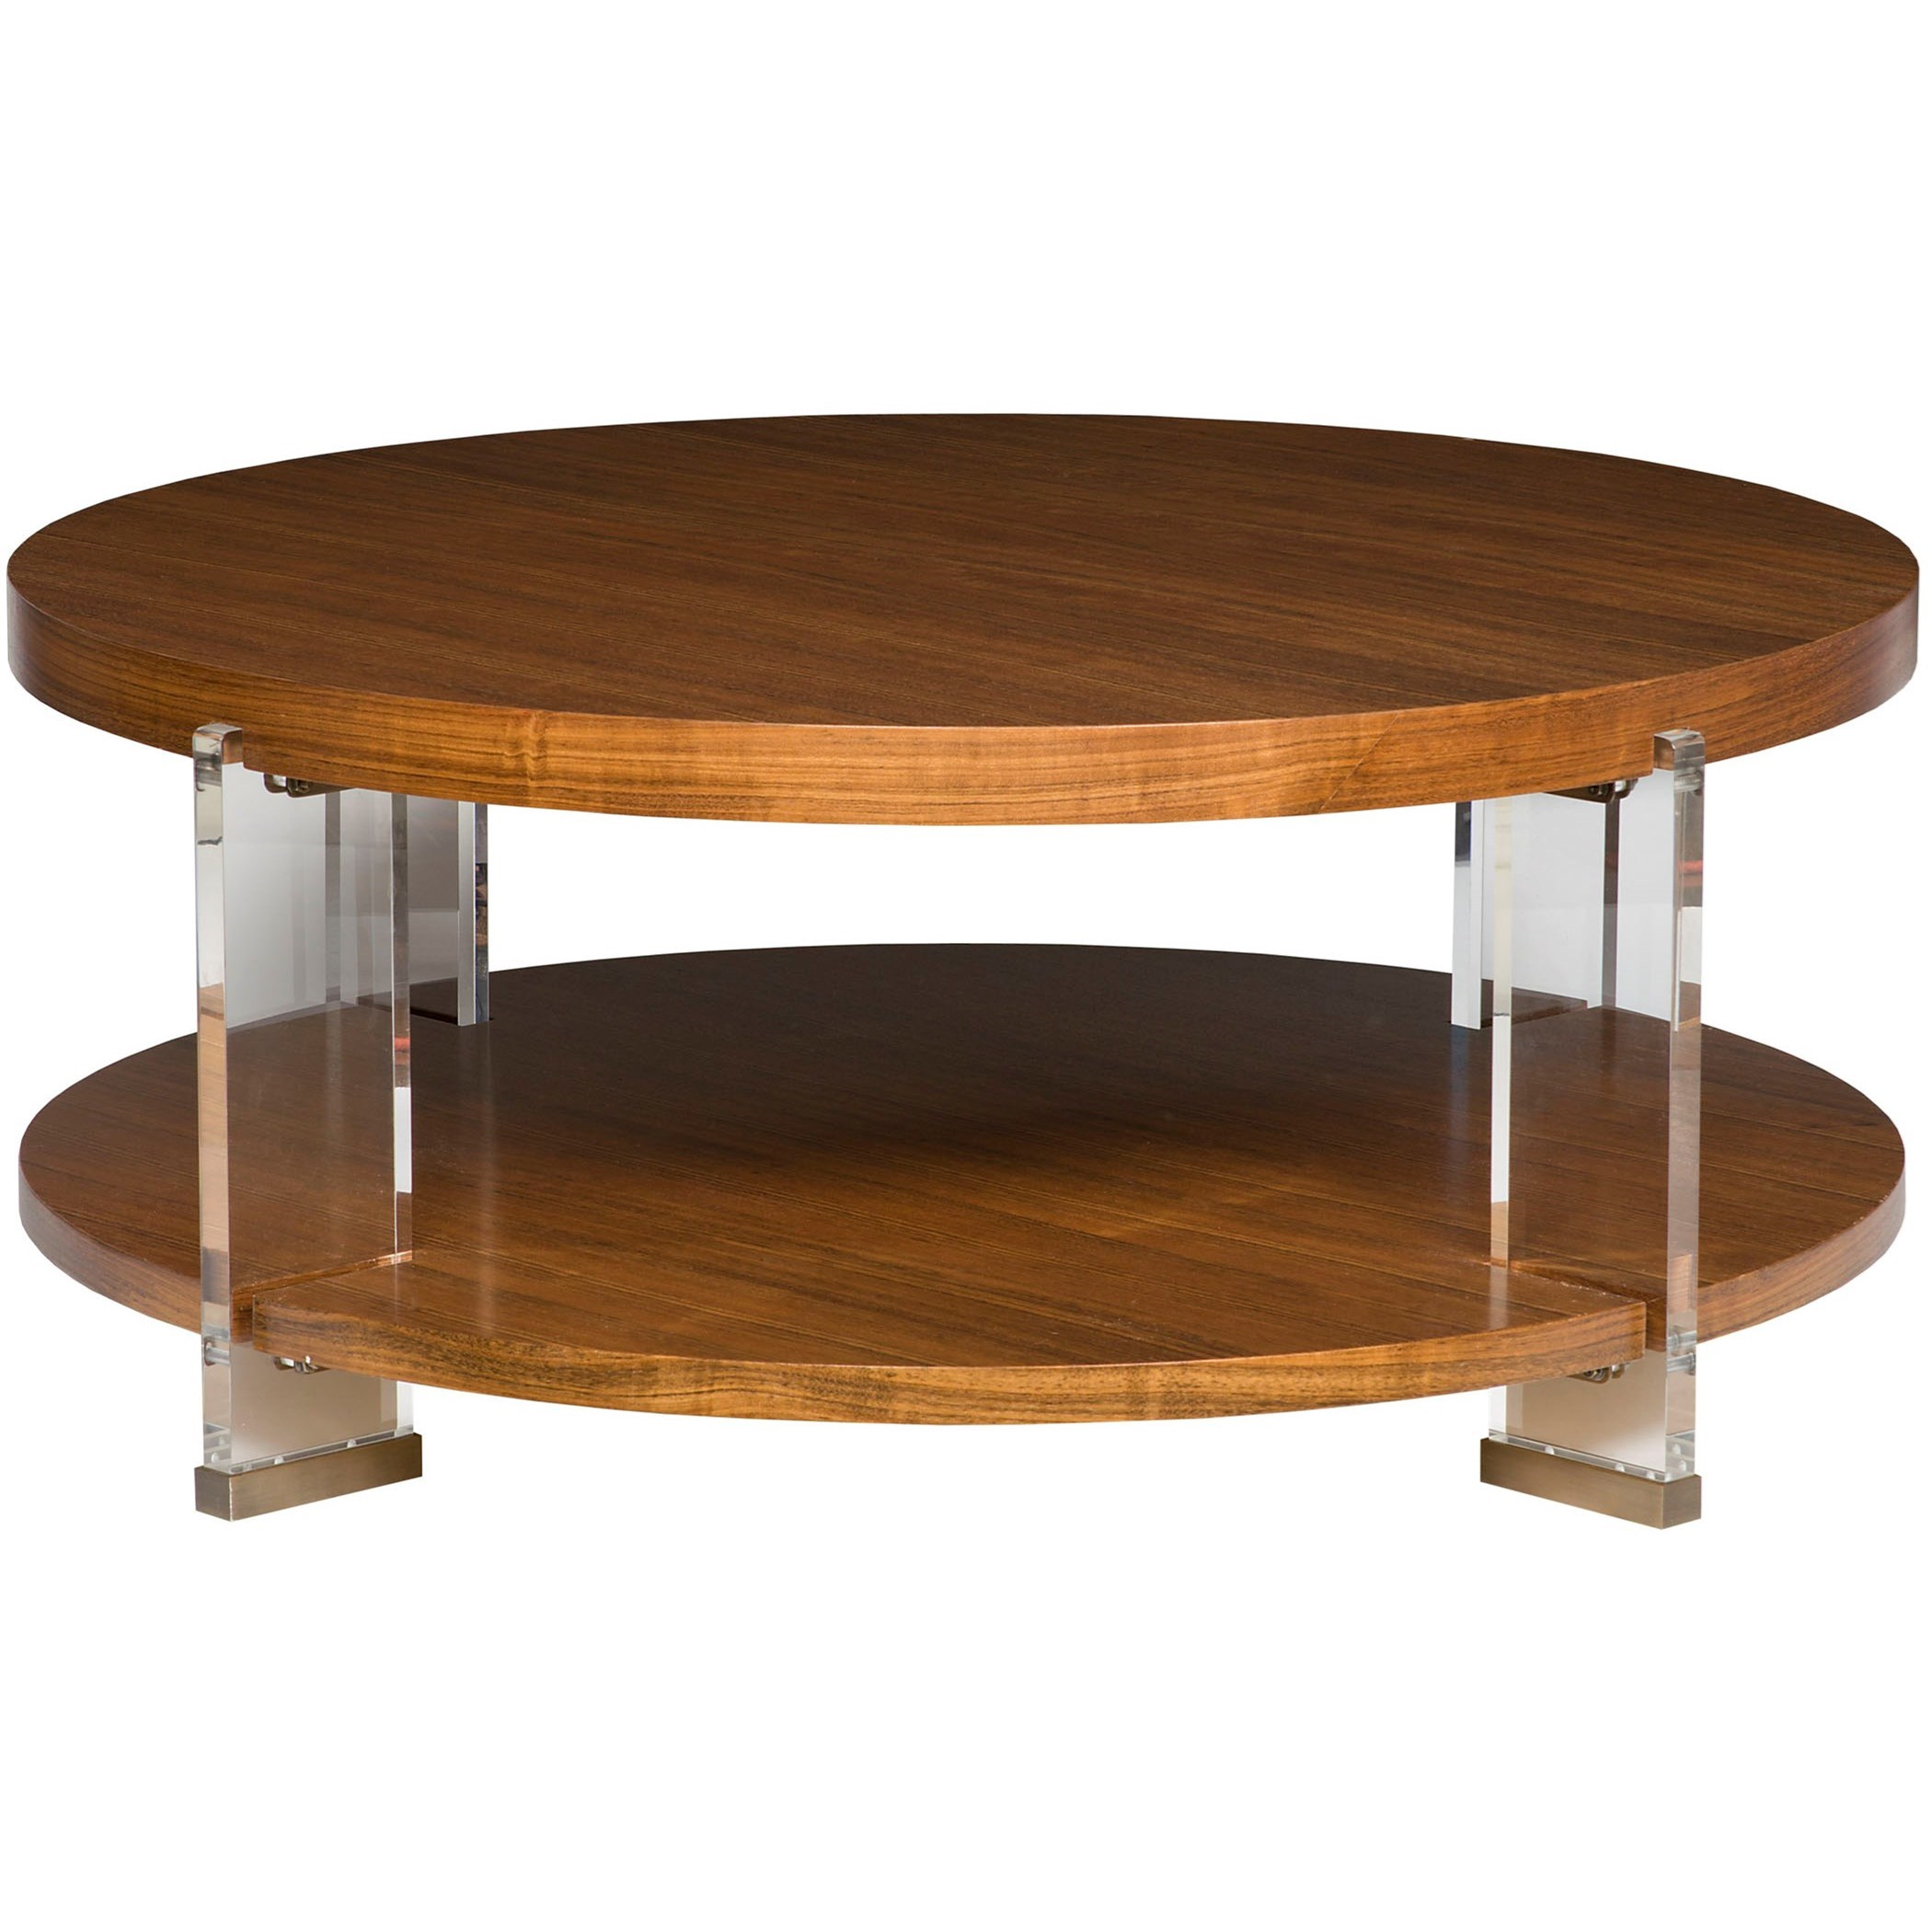 Accent and Entertainment Chests and Tables Dell Rey Round Cocktail Table by Vanguard Furniture at Sprintz Furniture